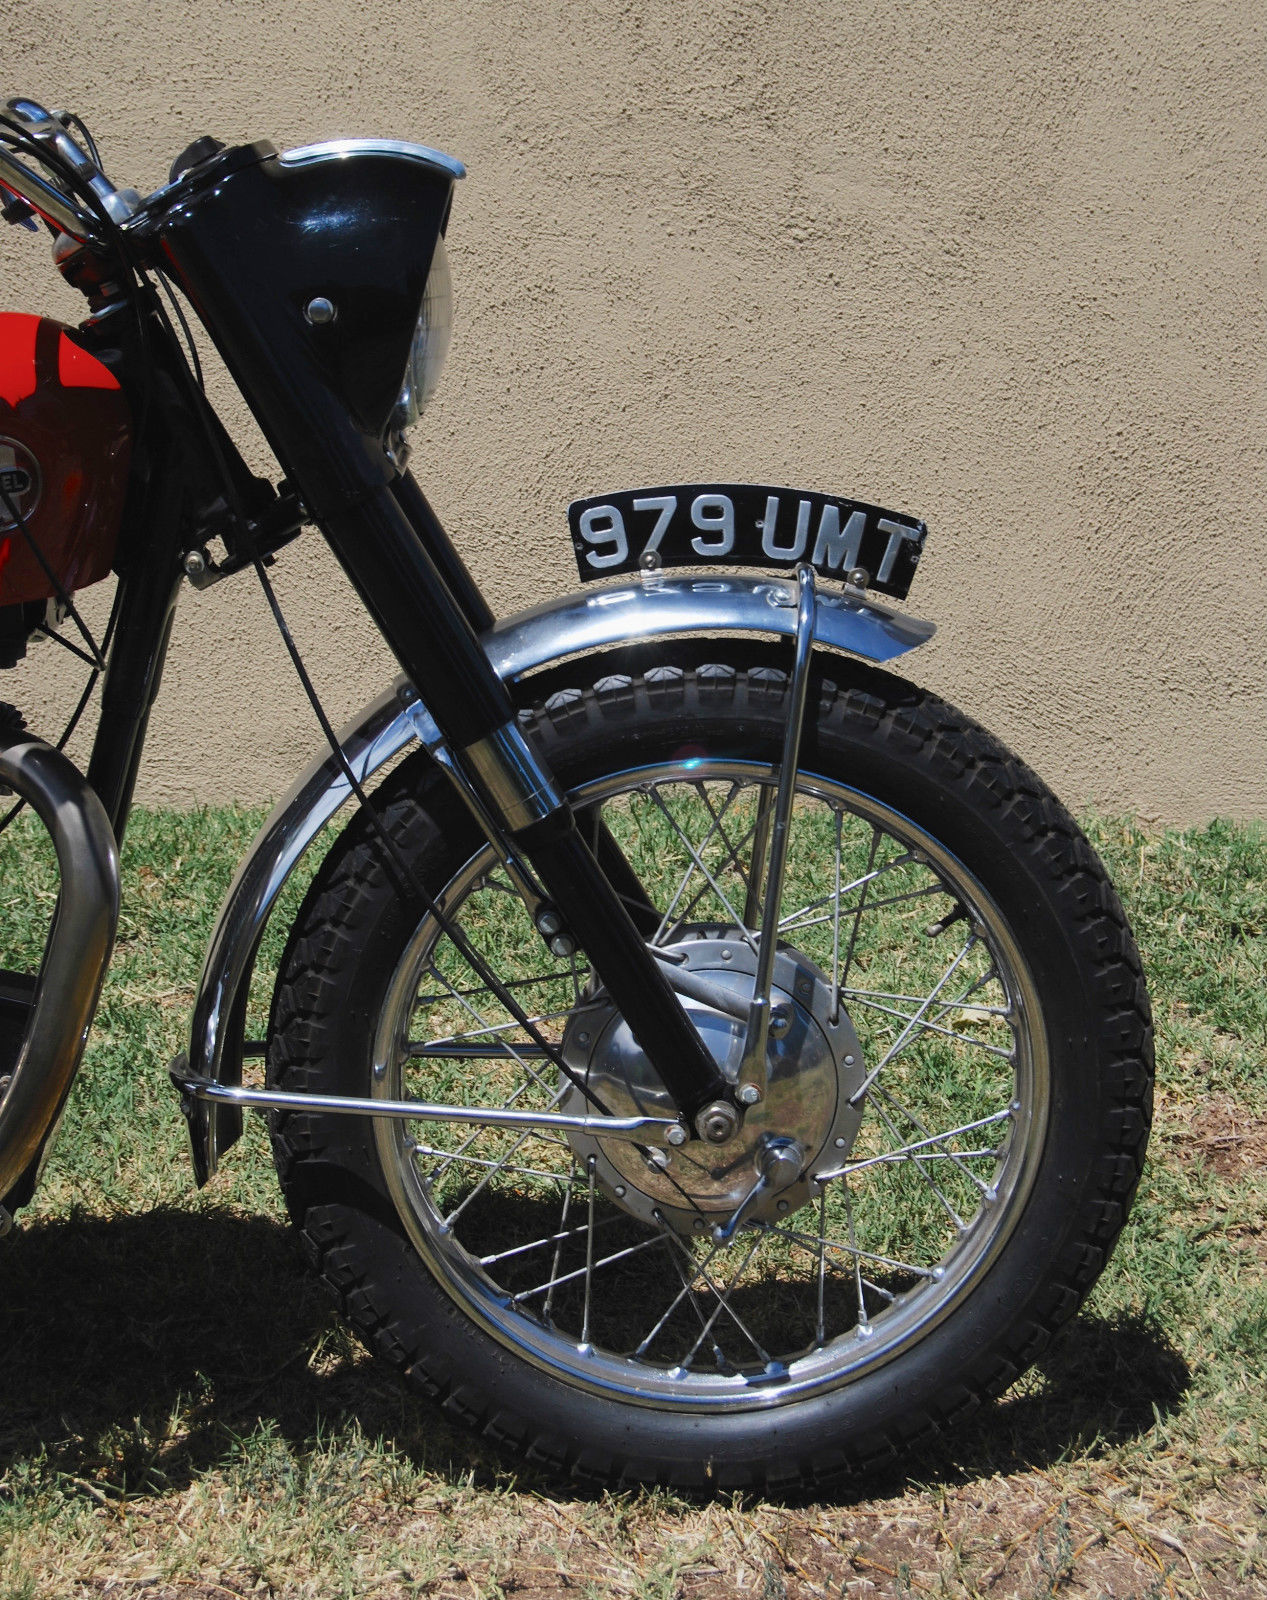 Ariel HS - 1957 - Front End, Headlight, Forks and Wheel.